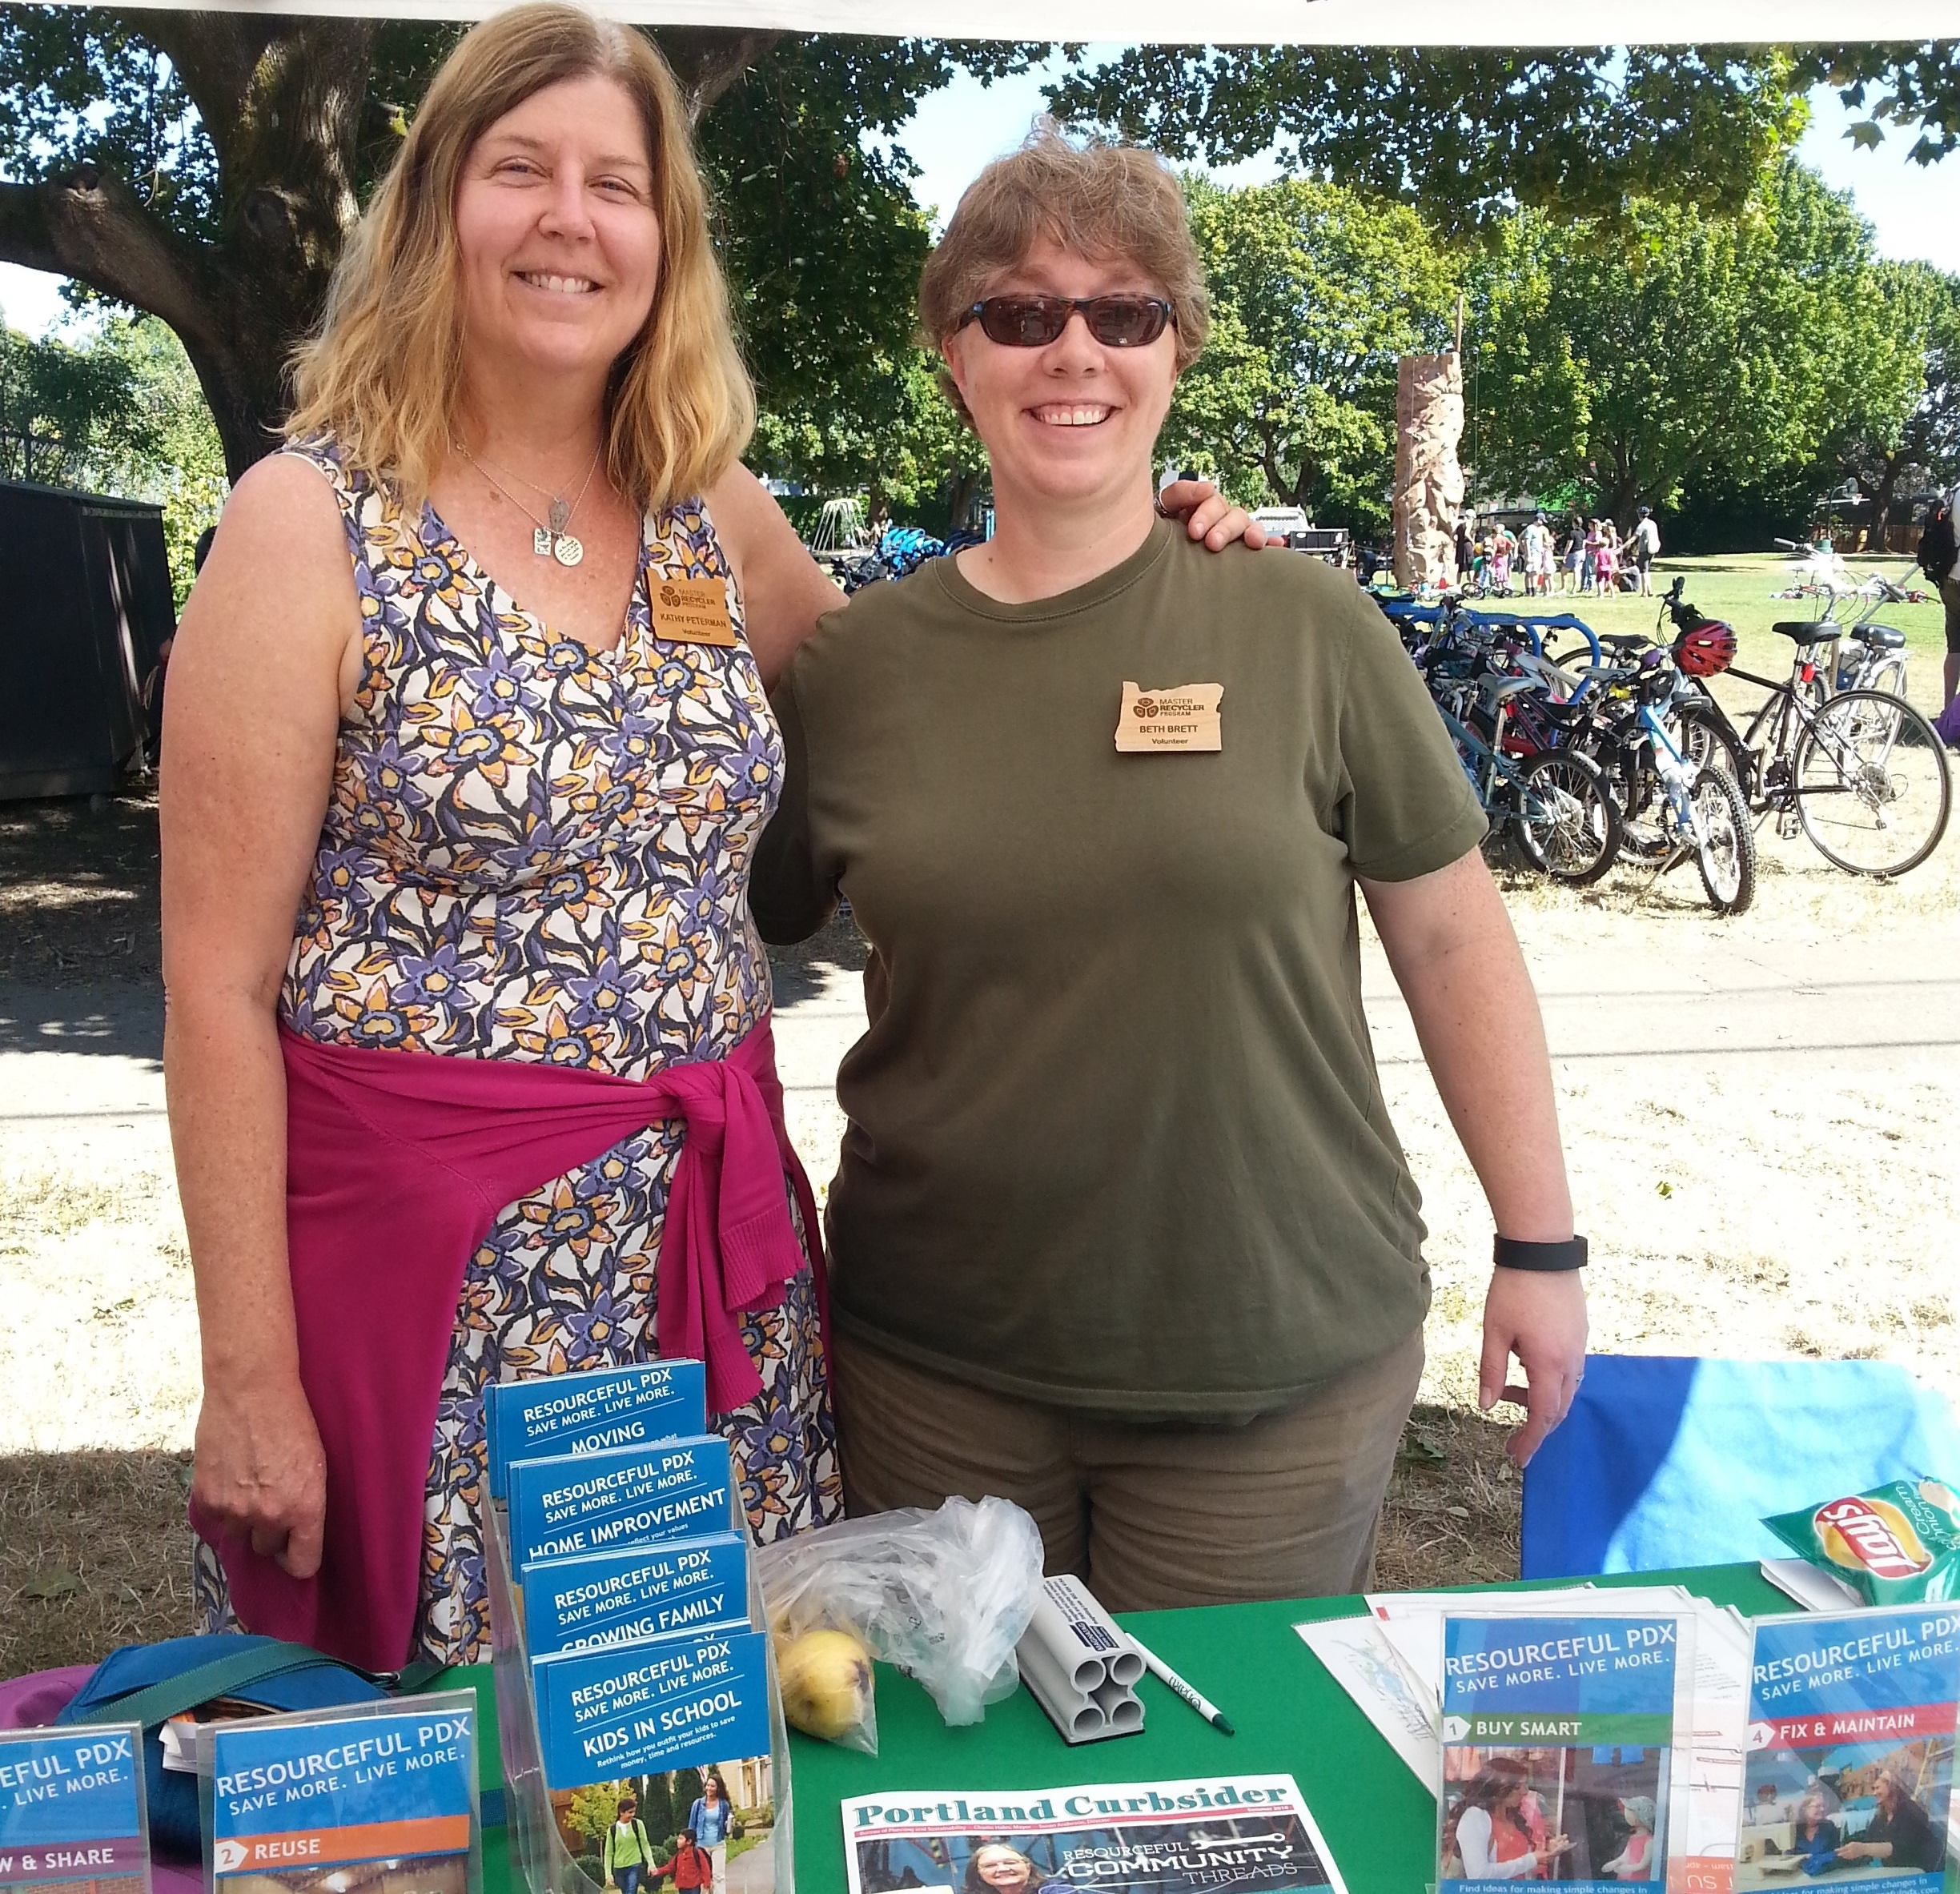 Beth with Kathy (Class 62) enjoying a Summer day at Sunday Parkways.